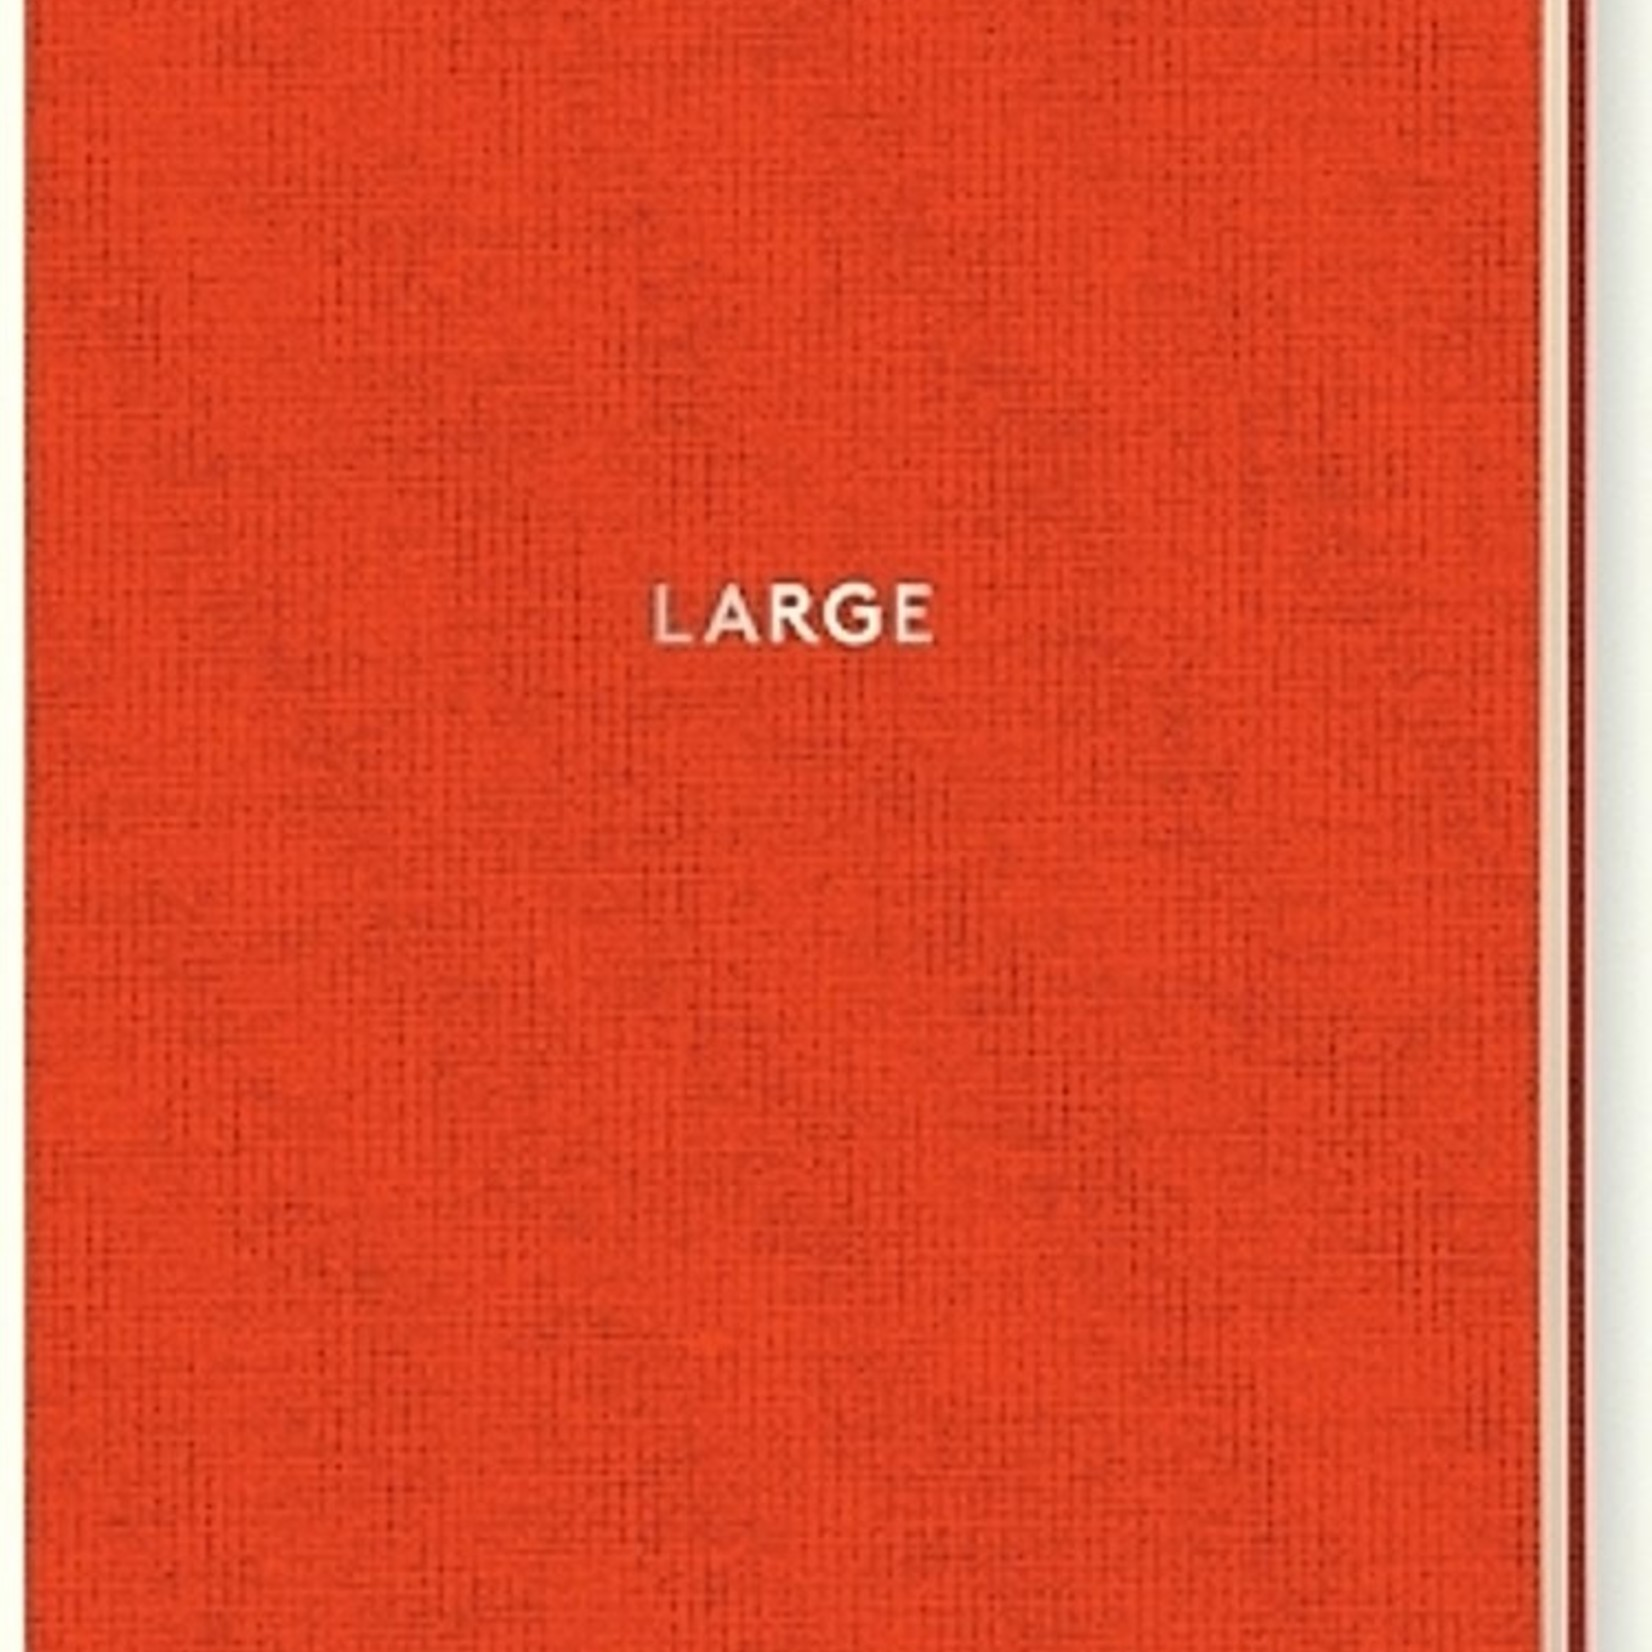 Diogenes Diogenes Notes large